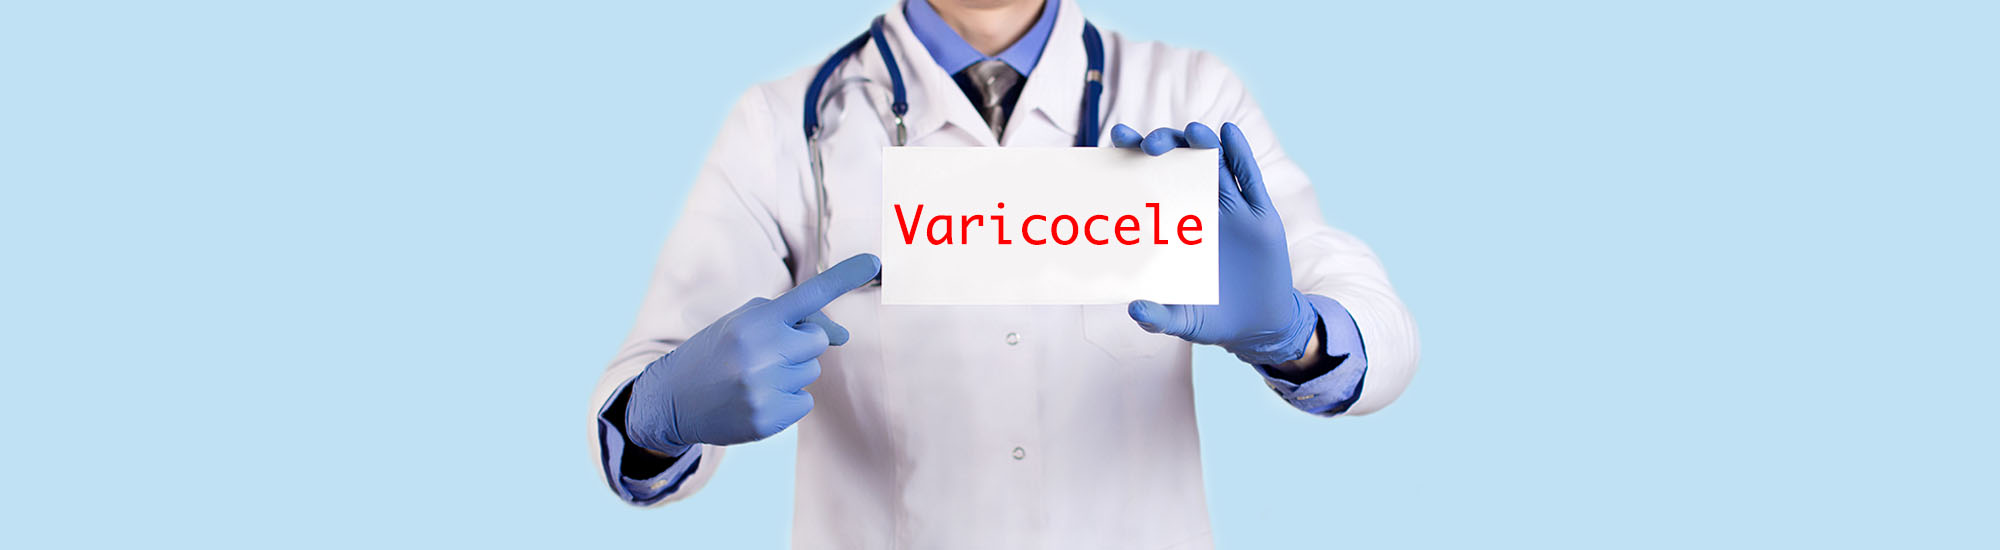 Ayurvedic treatment for Varicocele